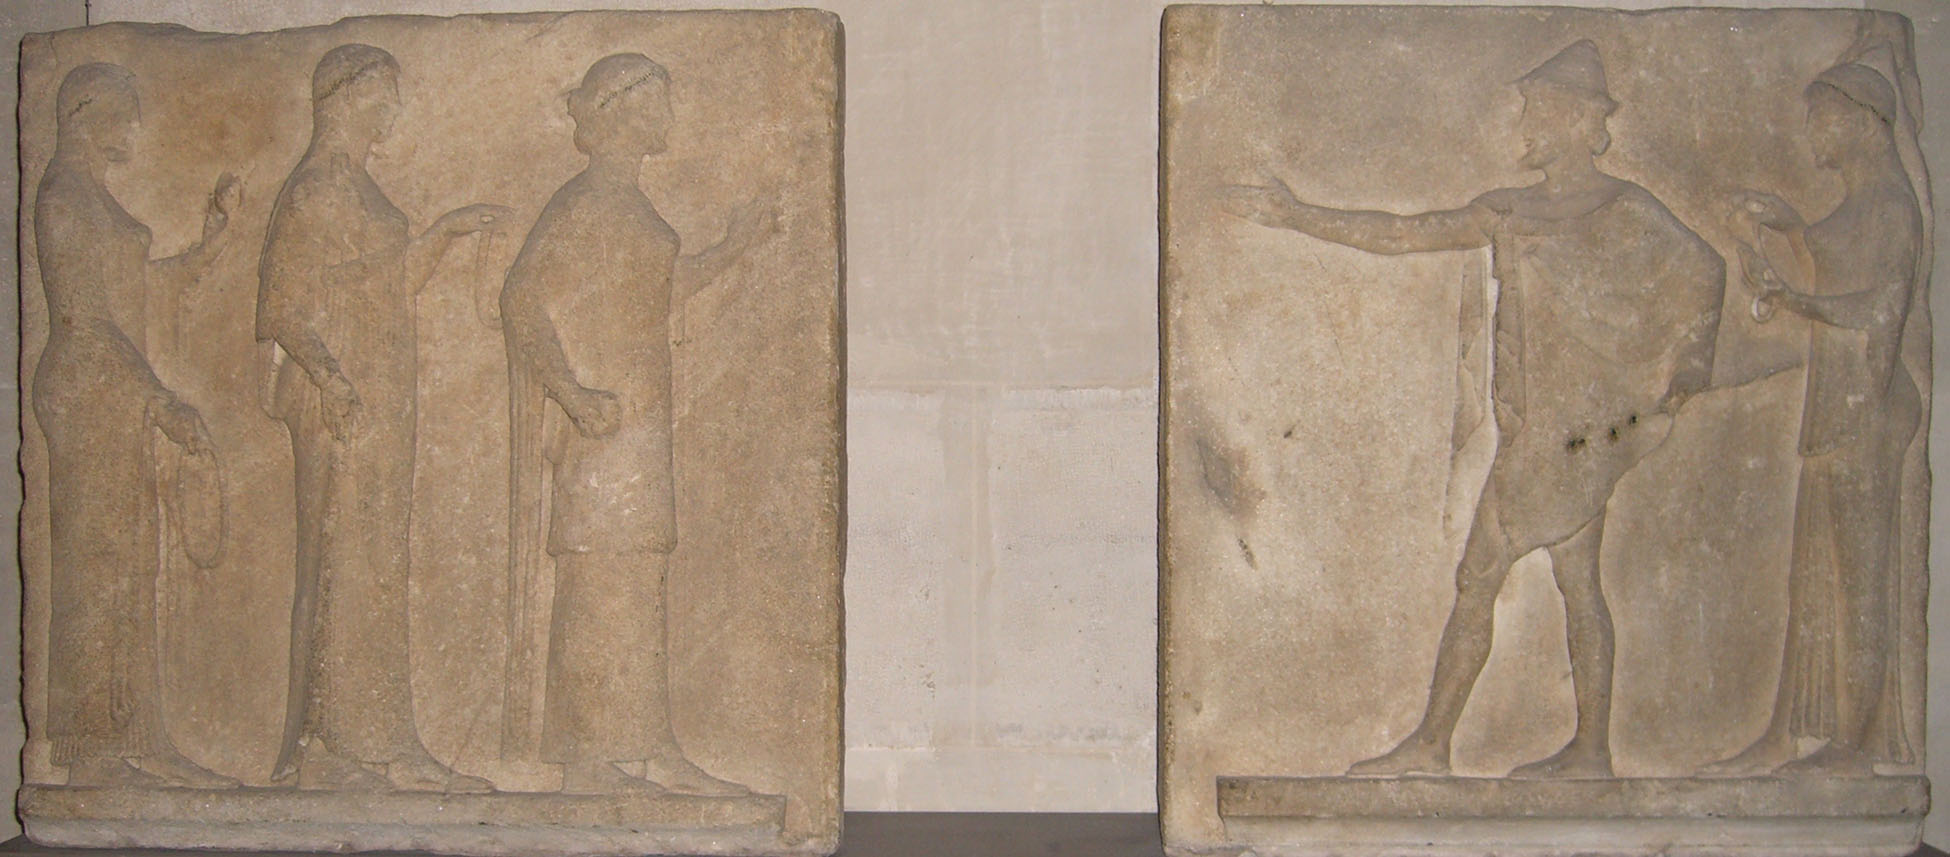 Fig. 9. Relief of Hermes and Charites, northwest wall of the Passage des Théores, Thasos, Greece, sculpted ca. 480 B.C.E.